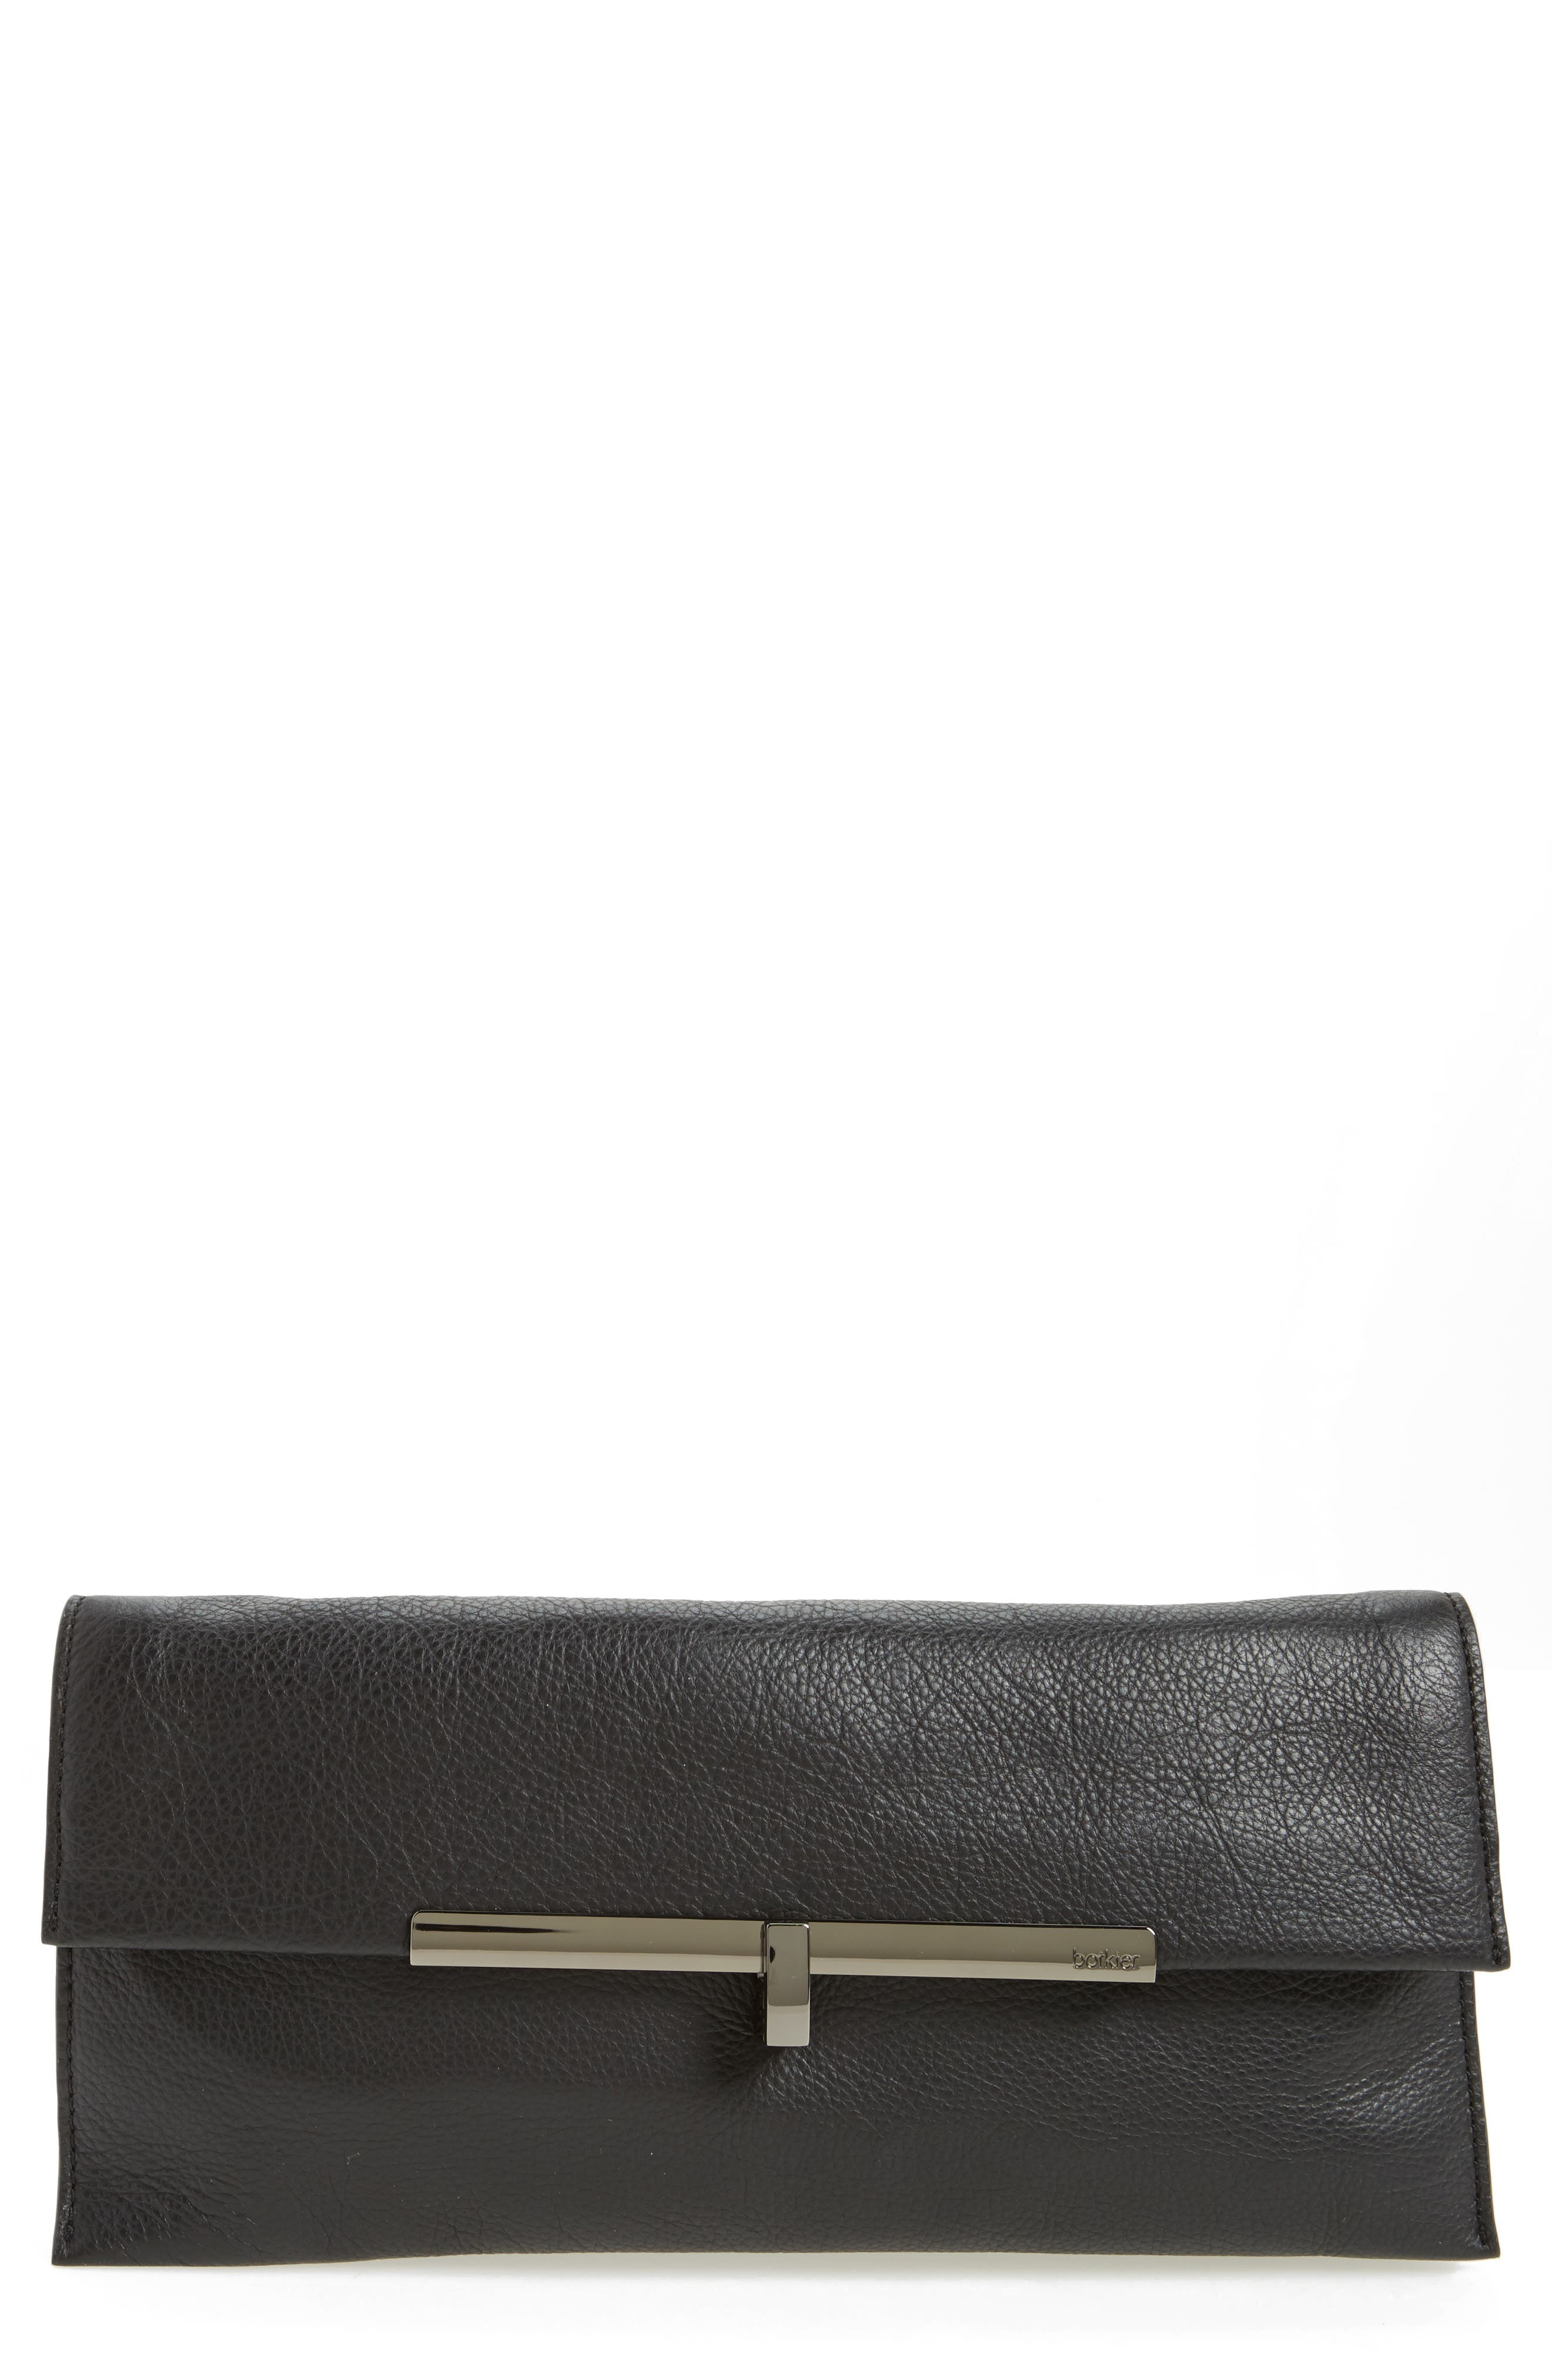 Bleeker Leather Clutch,                             Main thumbnail 1, color,                             004